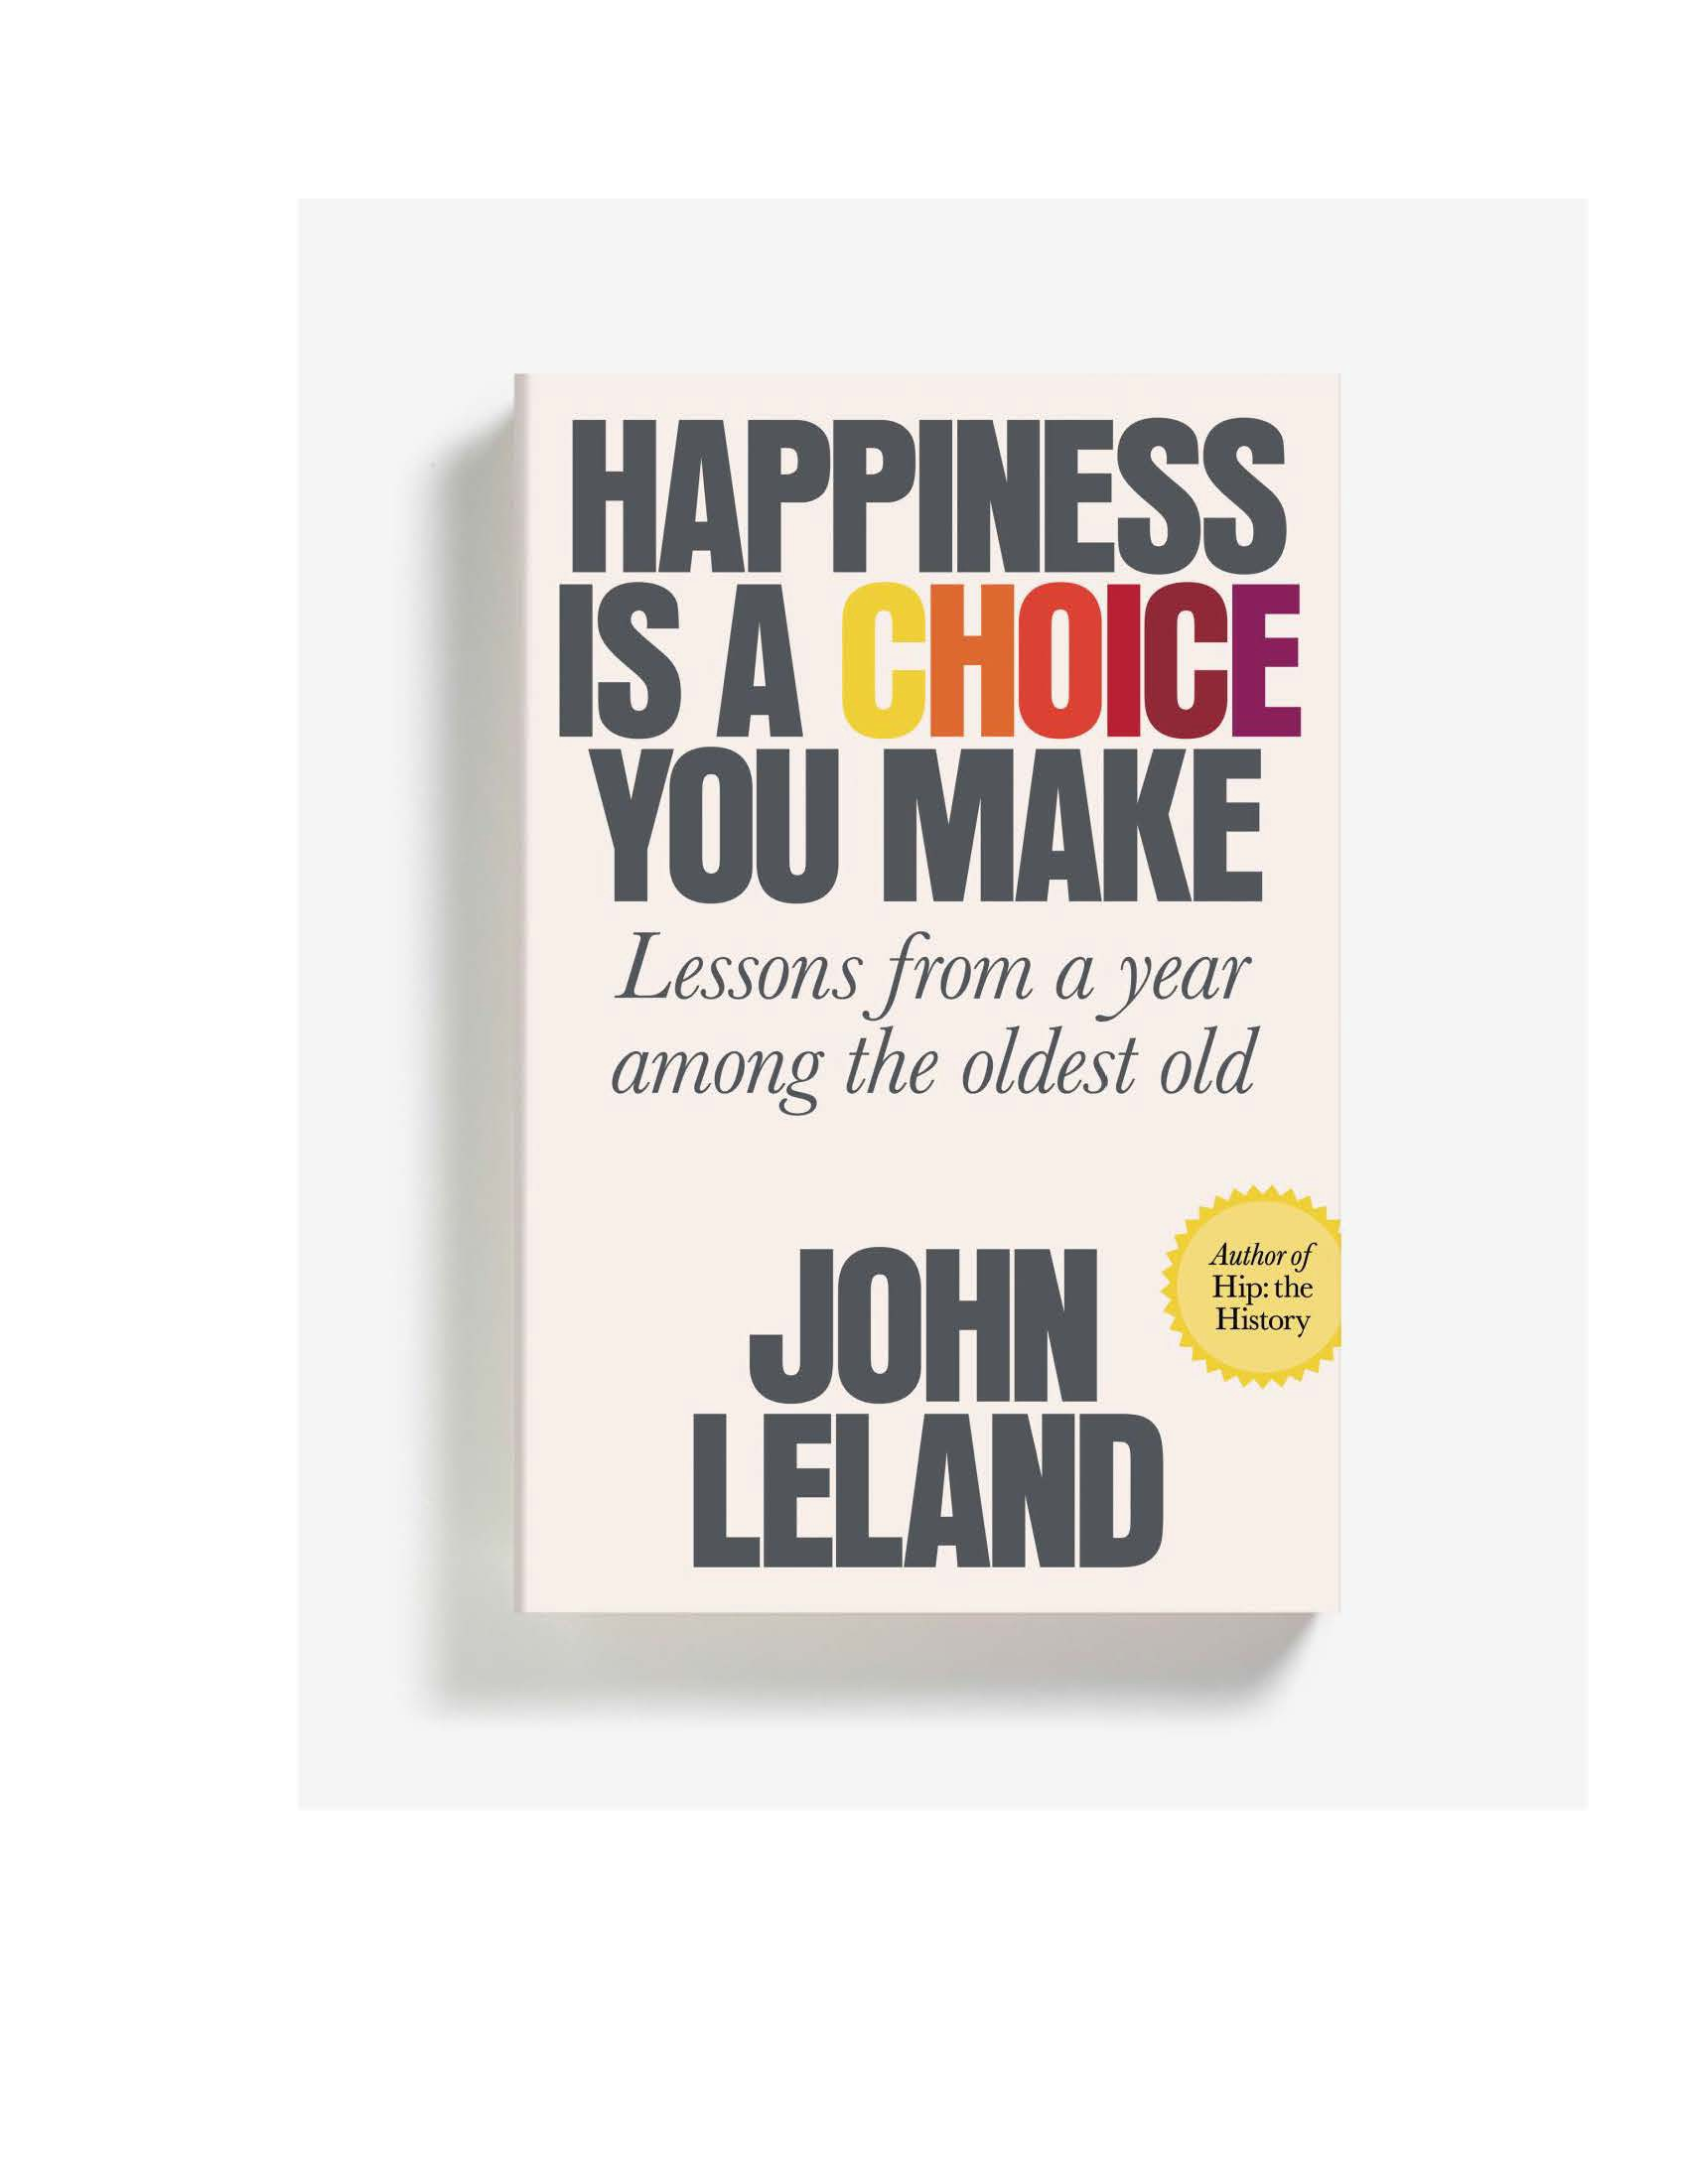 A Year Of Happiness choosing happiness at any age - midcentury modern